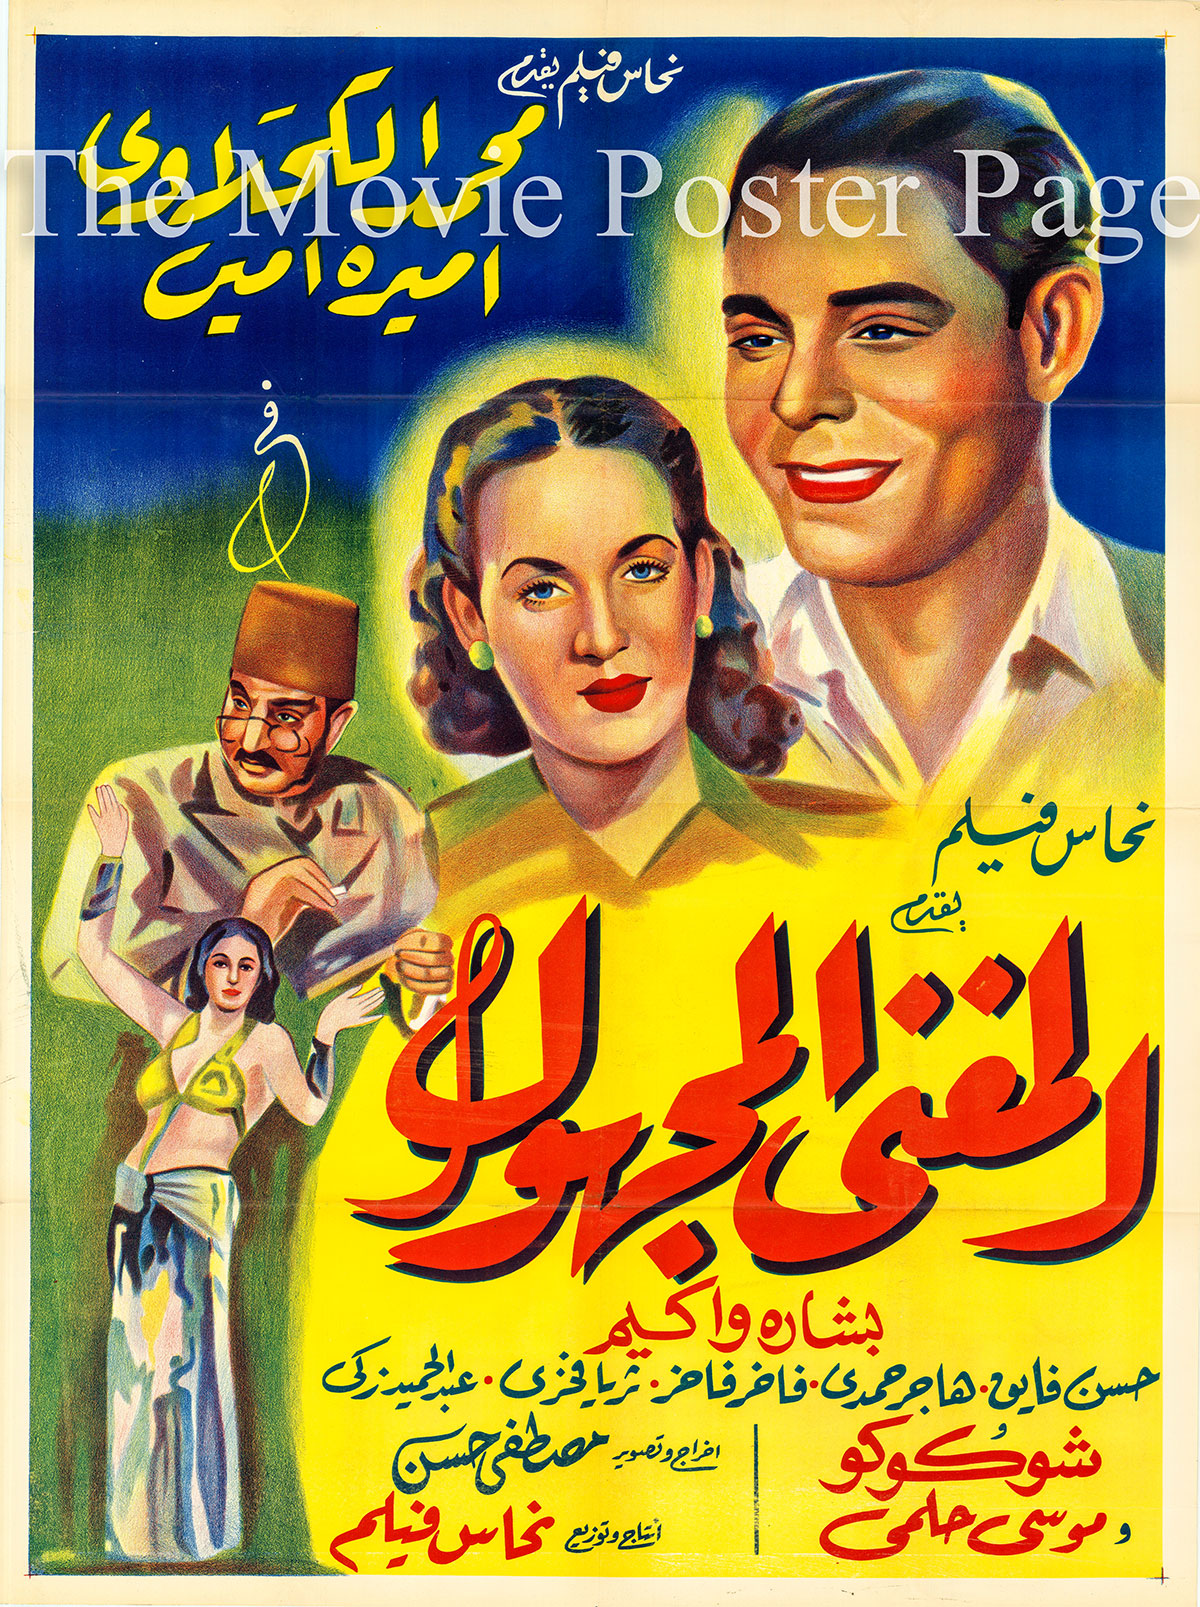 Pictured is an Egyptian promotional poster for the 1946 Mostafa Hassan film The Unknown Singer starring Mohammed Al Kahlawi.